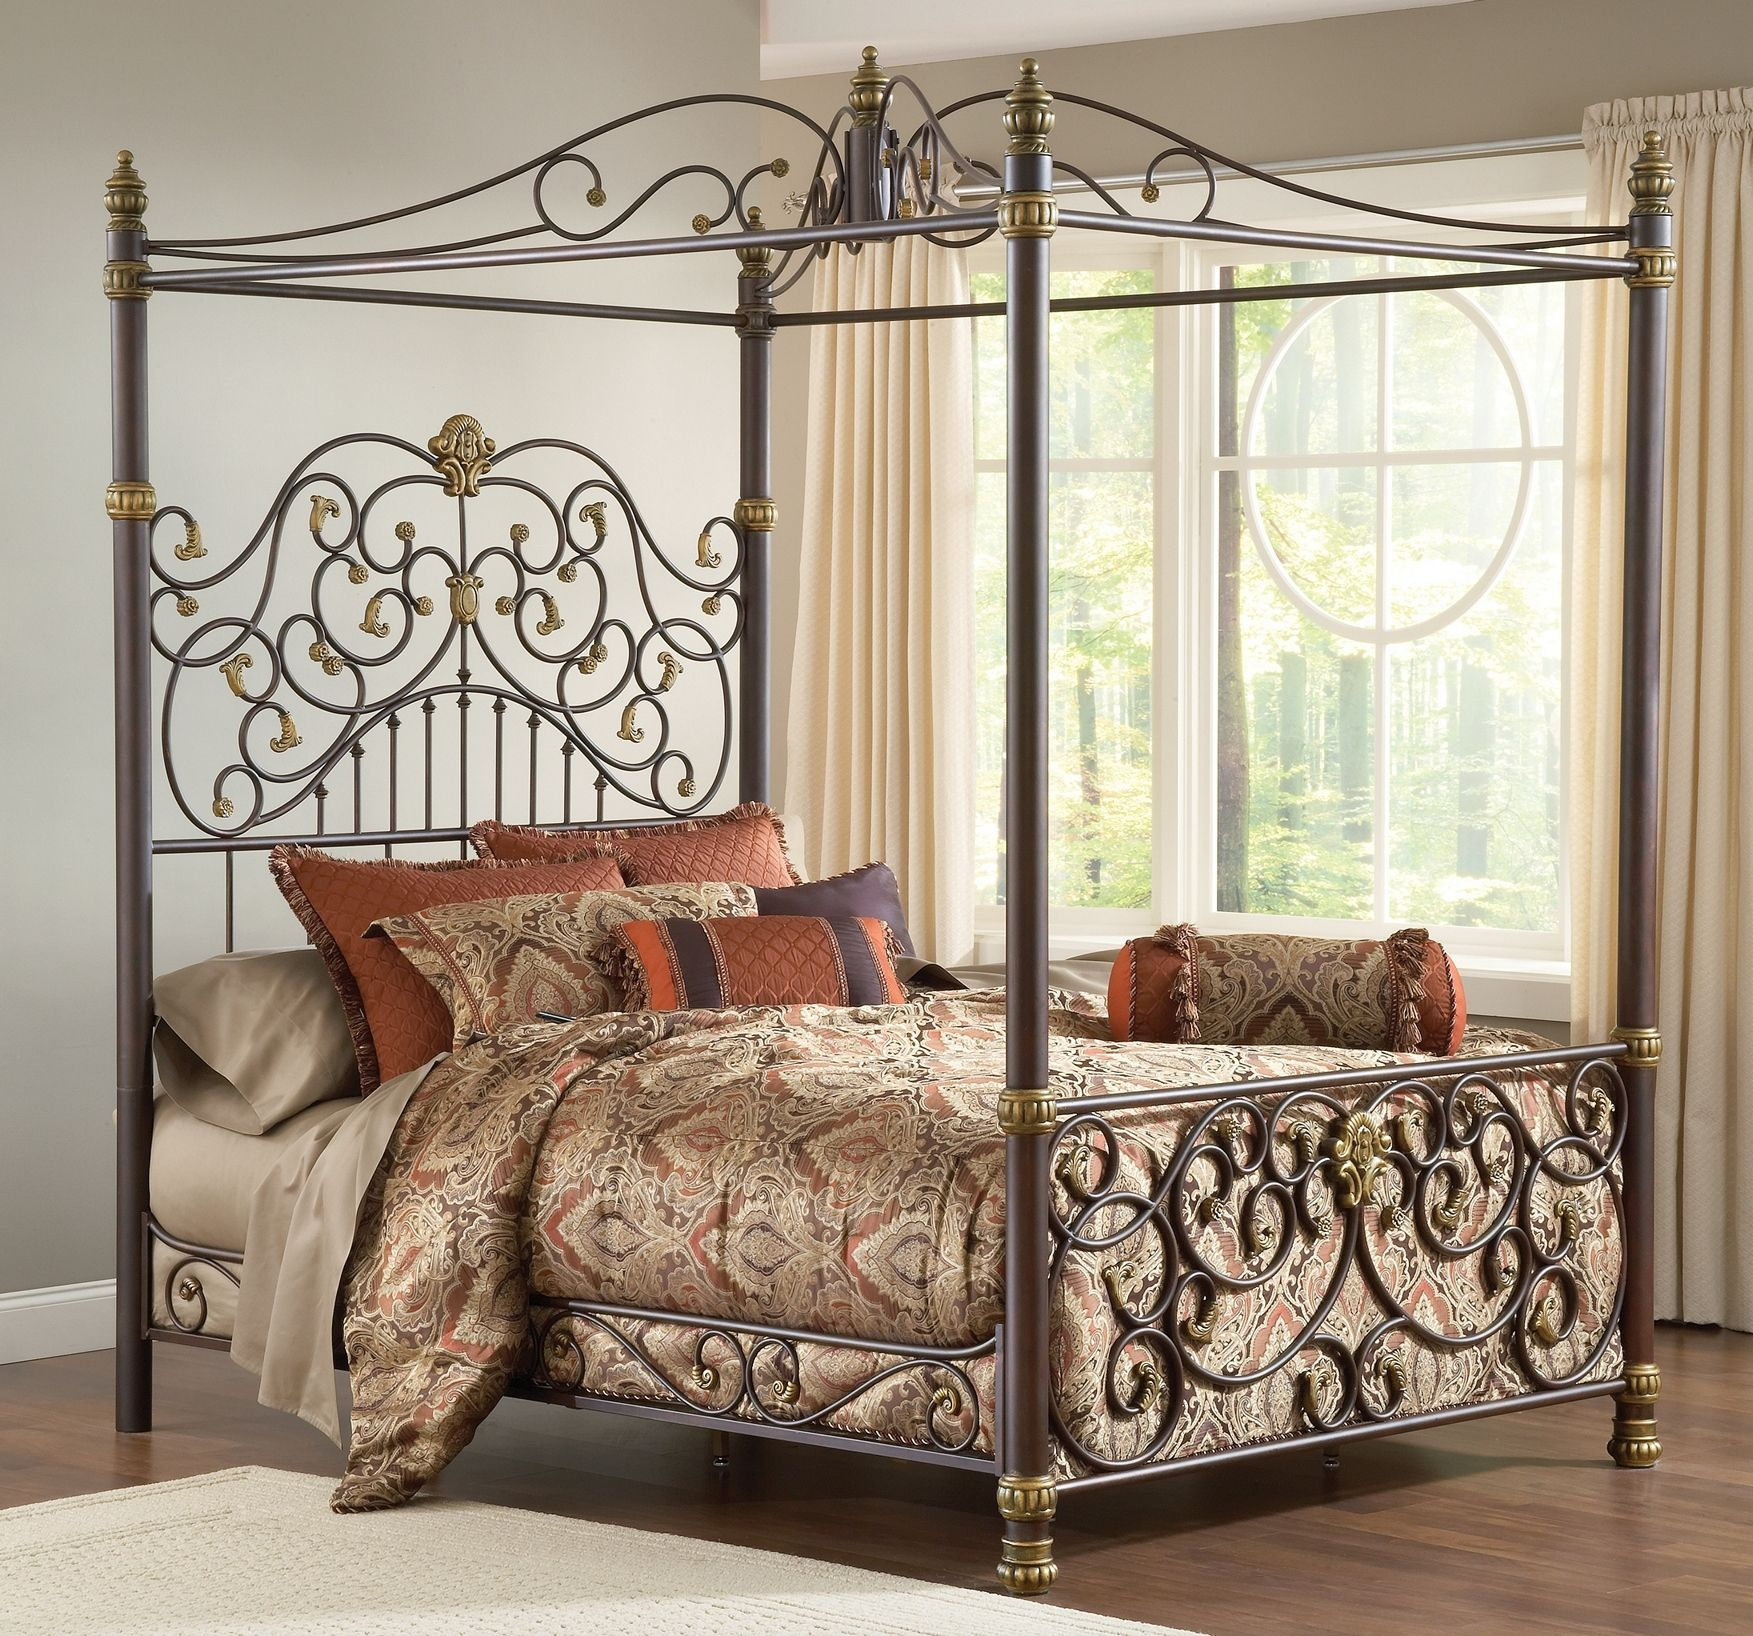 Espresso Wrought Bed Design Come With Canopy Decoration